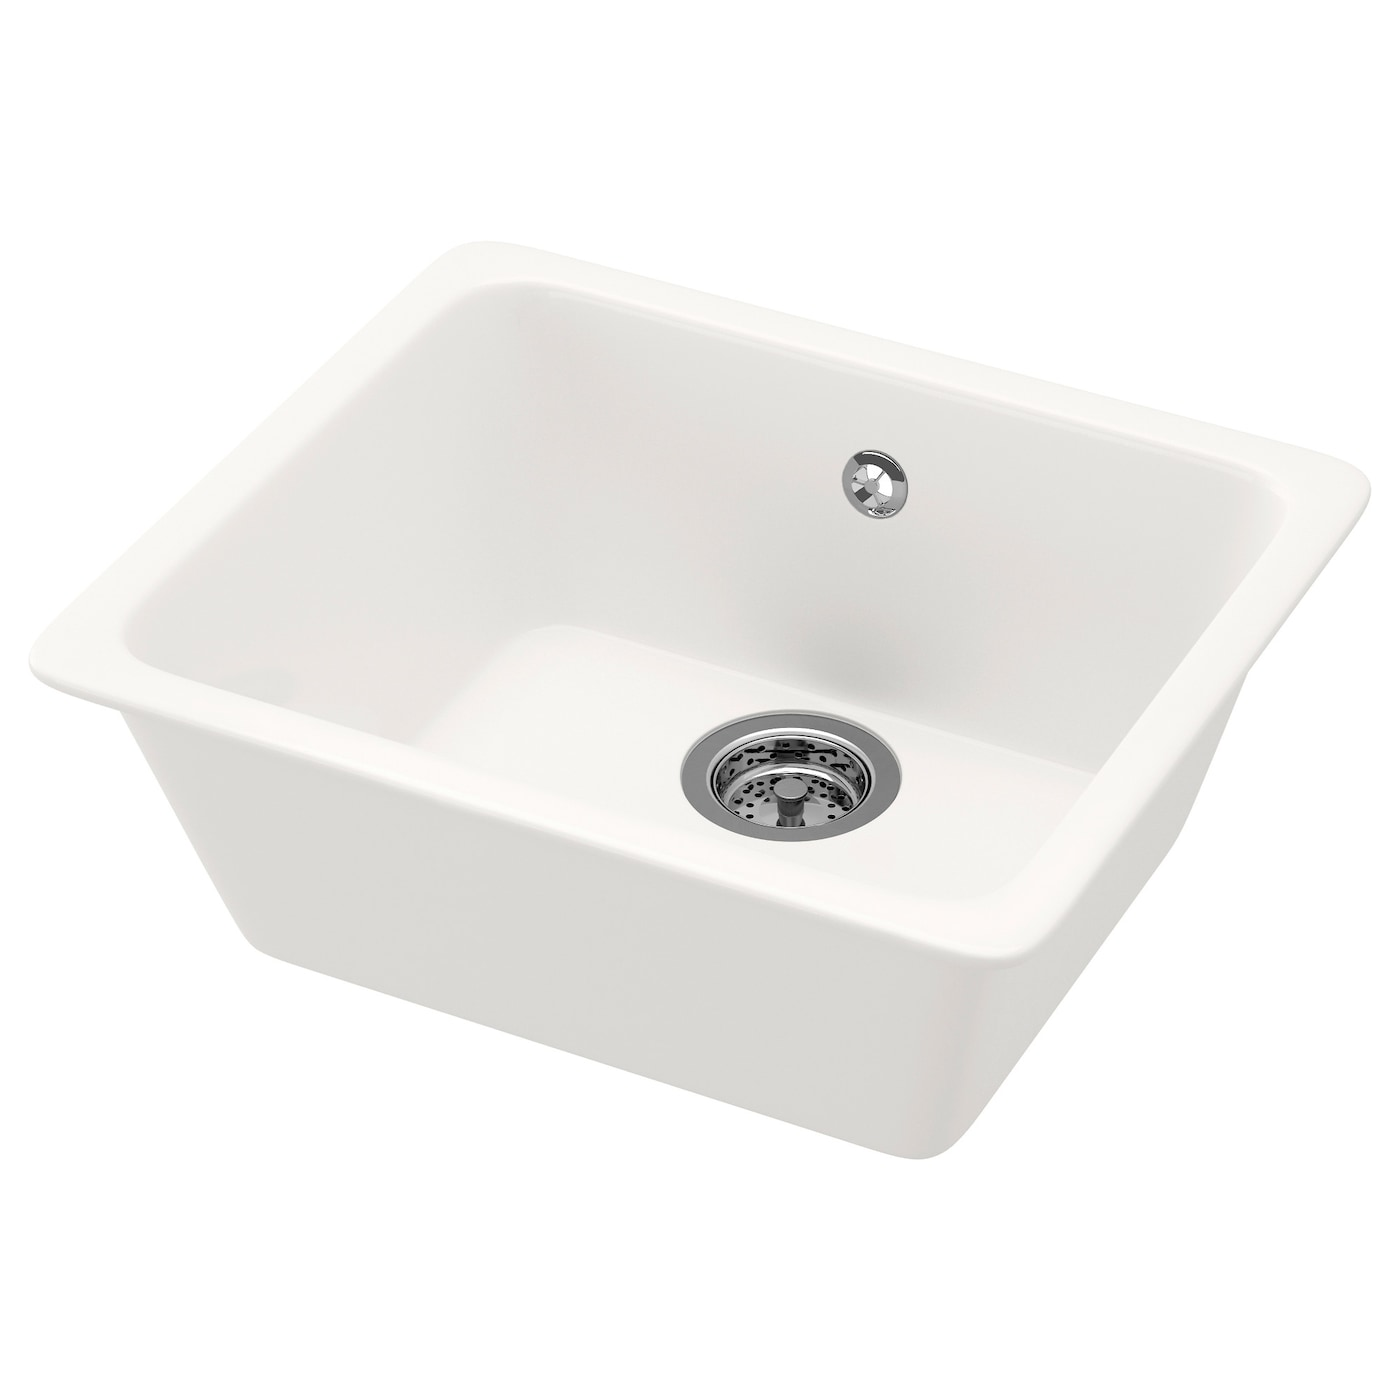 Ikea Kitchen Sink Domsj inset sink 1 bowl white 53x45 cm ikea ikea domsj inset sink 1 bowl 25 year guarantee read about the terms in workwithnaturefo